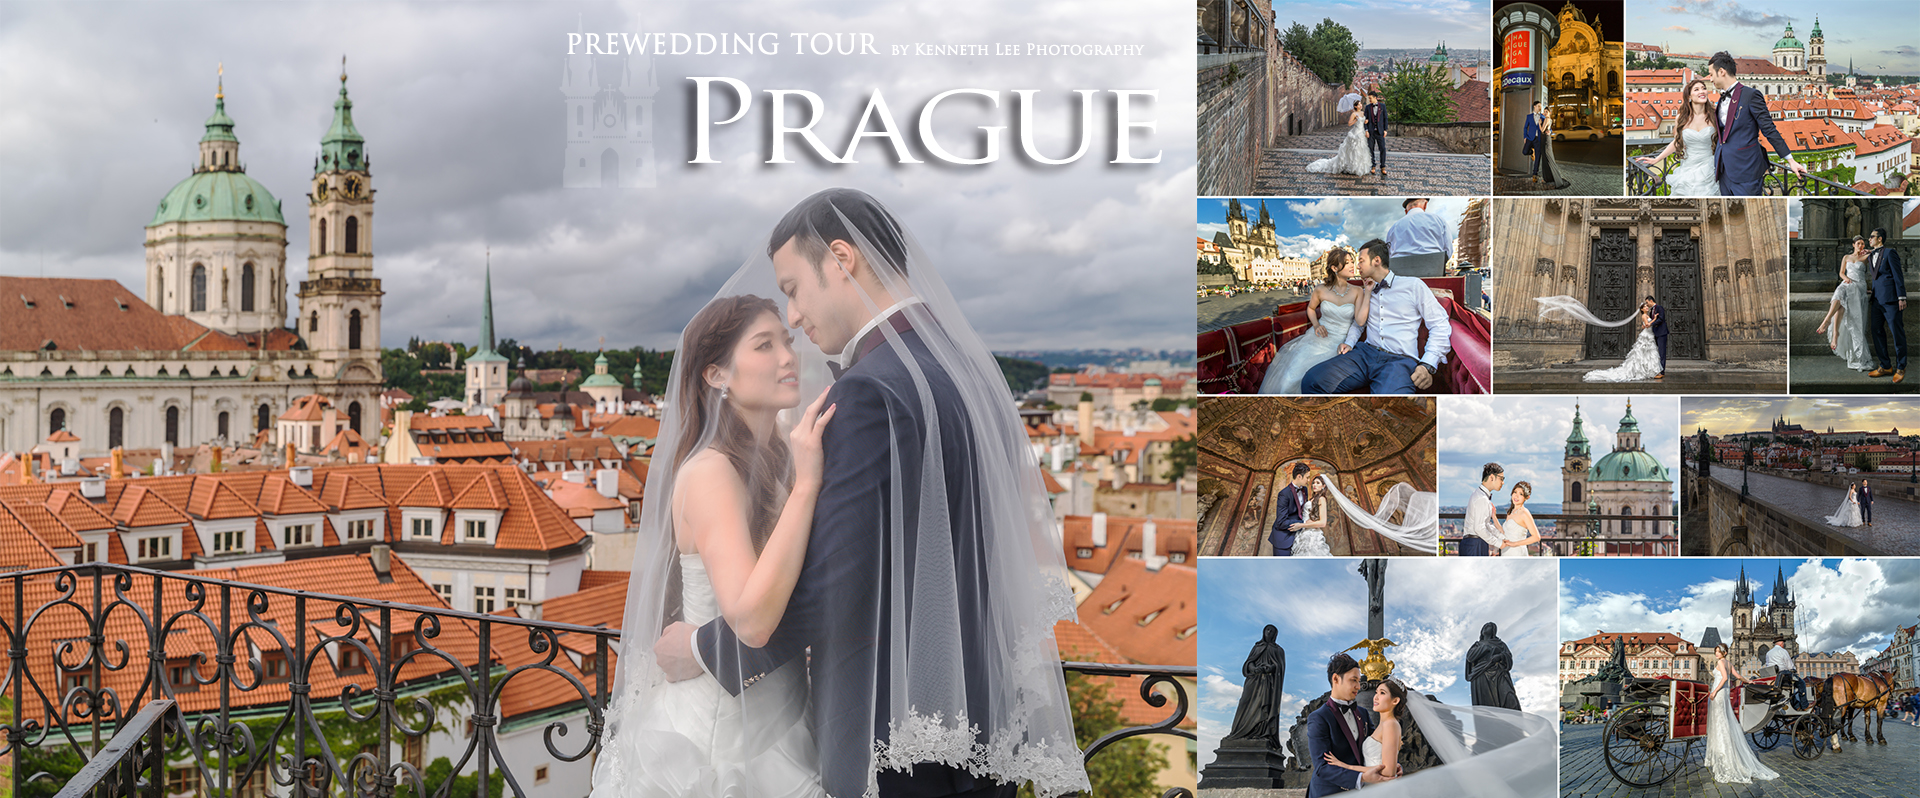 prague_prewedding_photo_tour